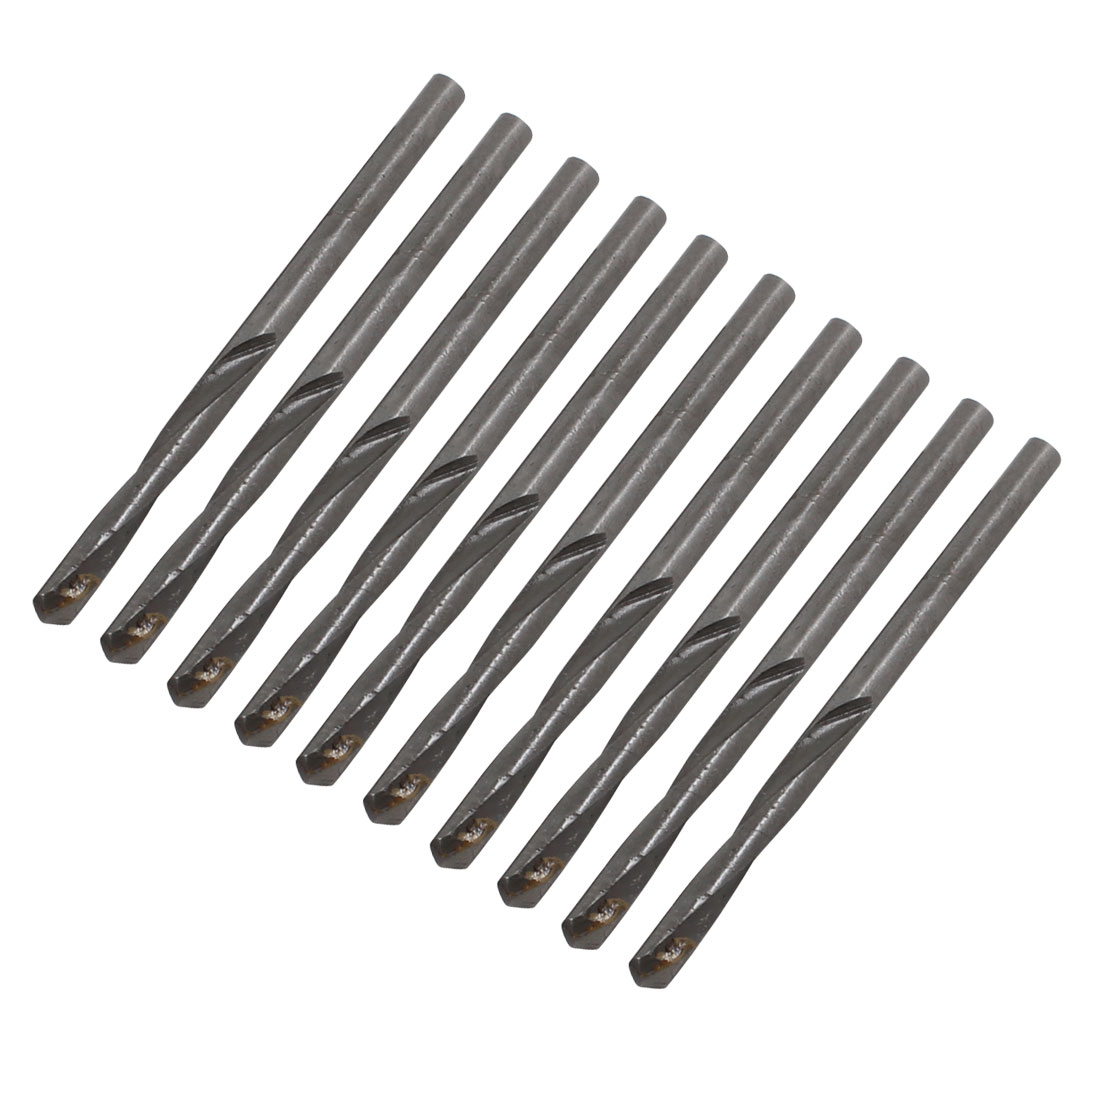 4mm-x-4mm-x-30mm-x-65mm-2-Flutes-HSS-AL-End-Mill-Milling-Cutter-Tool-10-Pcs